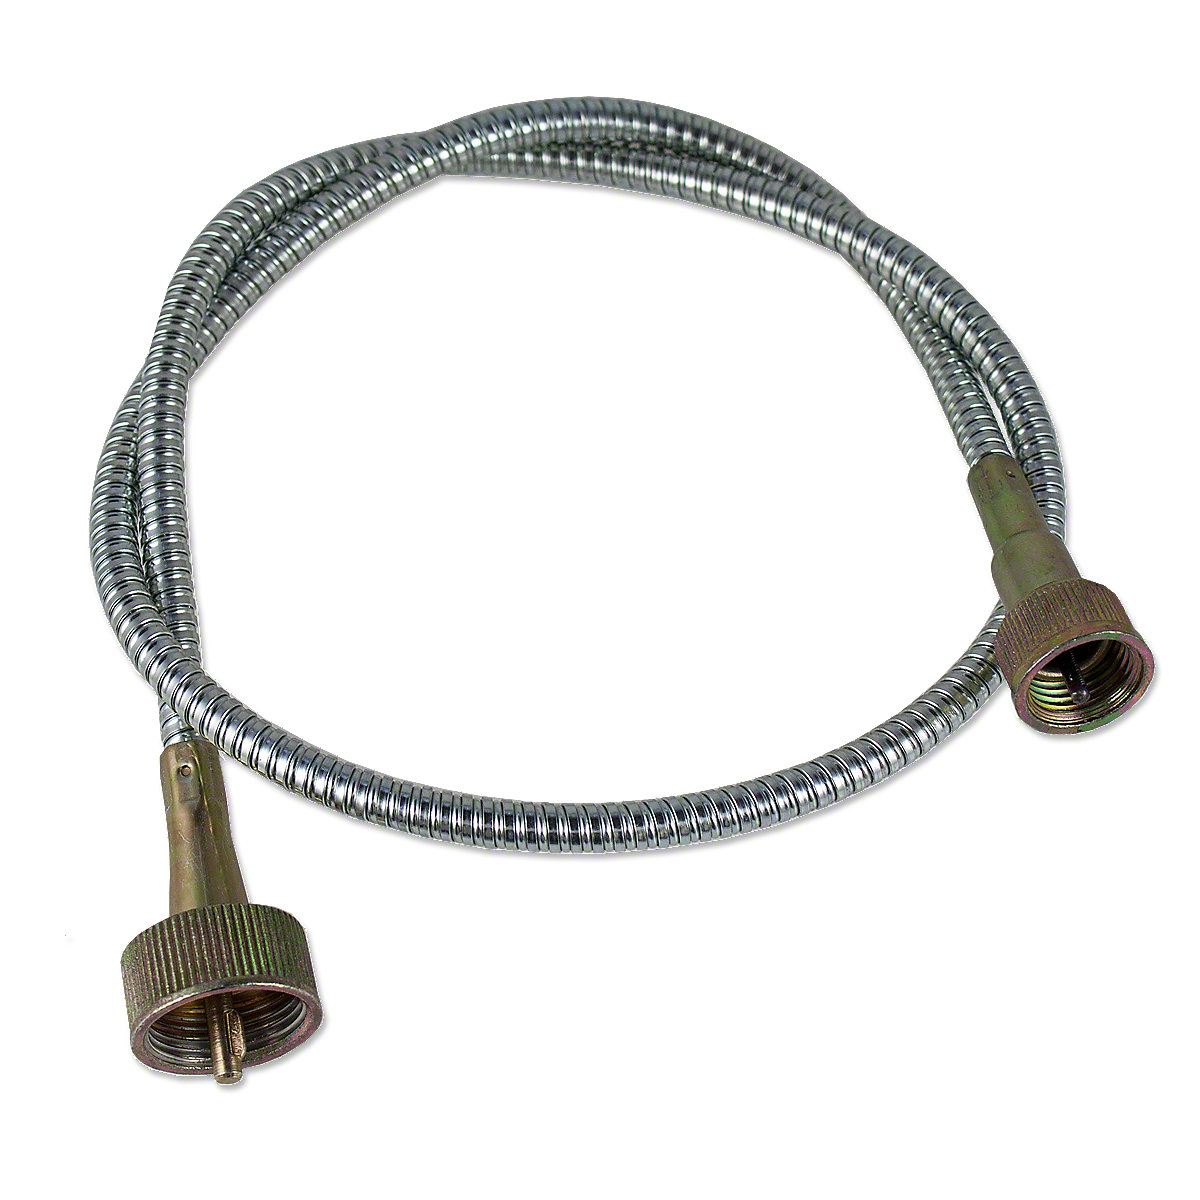 ABC565 Metal Sheathed Tach / Proofmeter Cable -- Fits Ford NAA, Jubilee And Other Models!